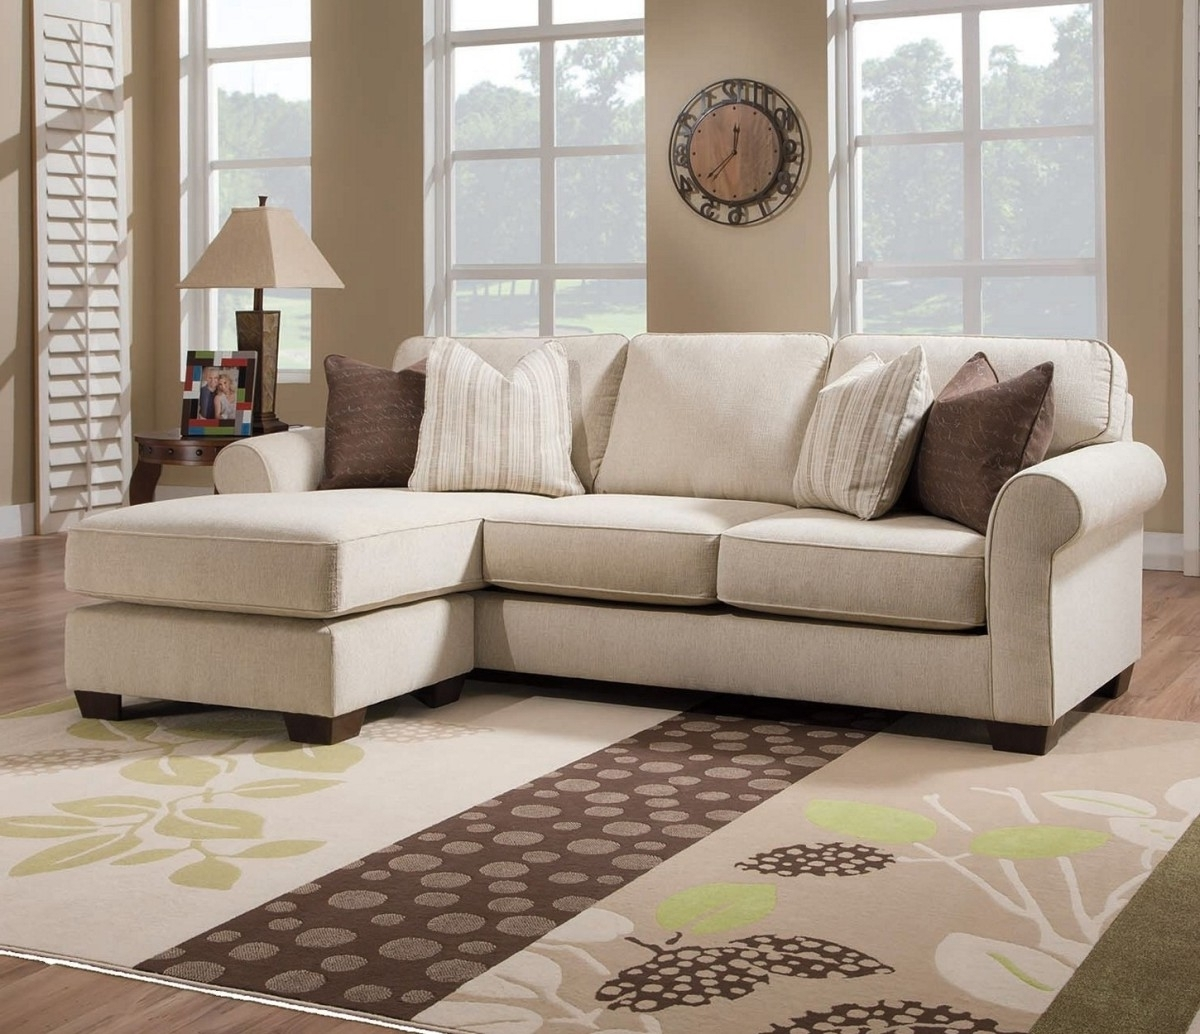 Sectional Sofas At Charlotte Nc Intended For Most Popular Ethan Allen Charlotte Nc Modern Italian Leather Sofa Ethan Allen (View 6 of 20)